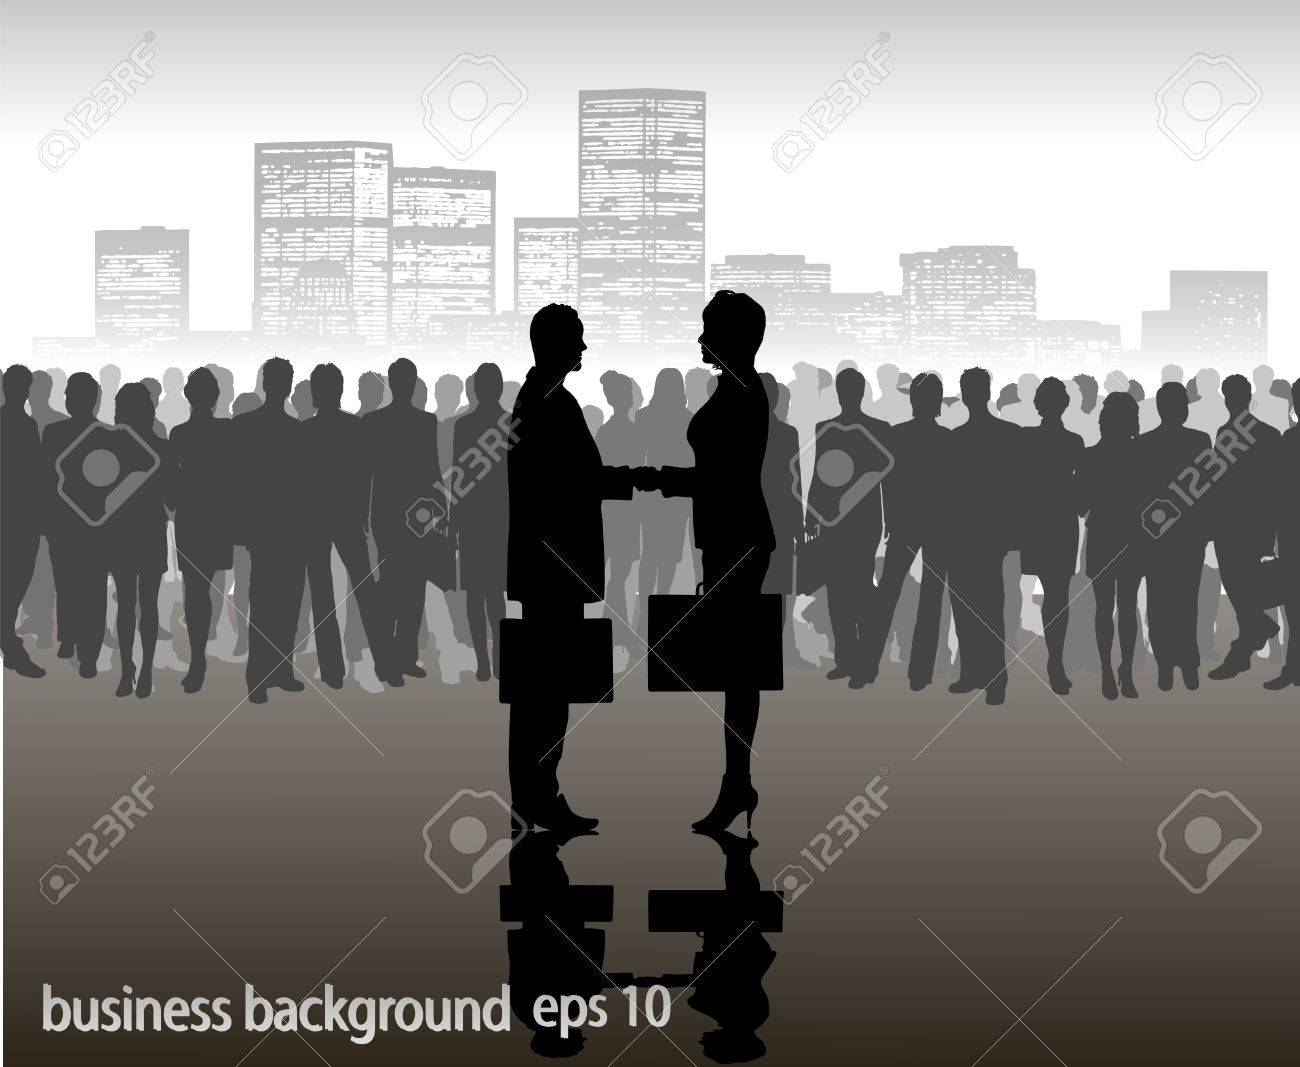 on the image the meeting of two businessmen is presented Stock Vector - 16103002